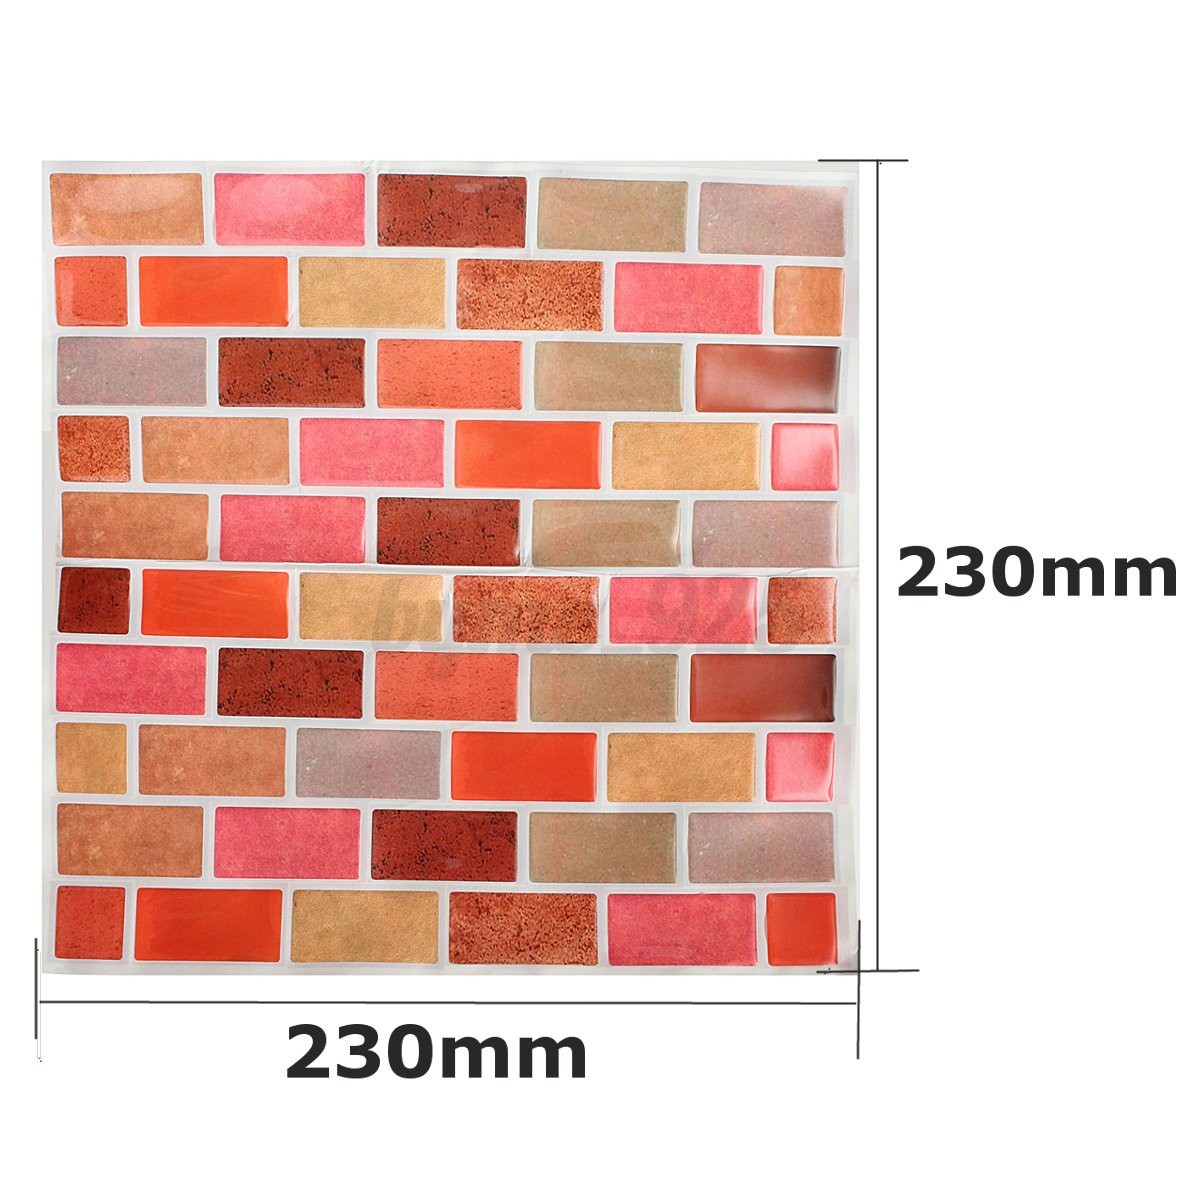 Orange Mosaic Tile 3D Wallpaper Sticker Home Decor Bathroom Kitchen DIY 230mm